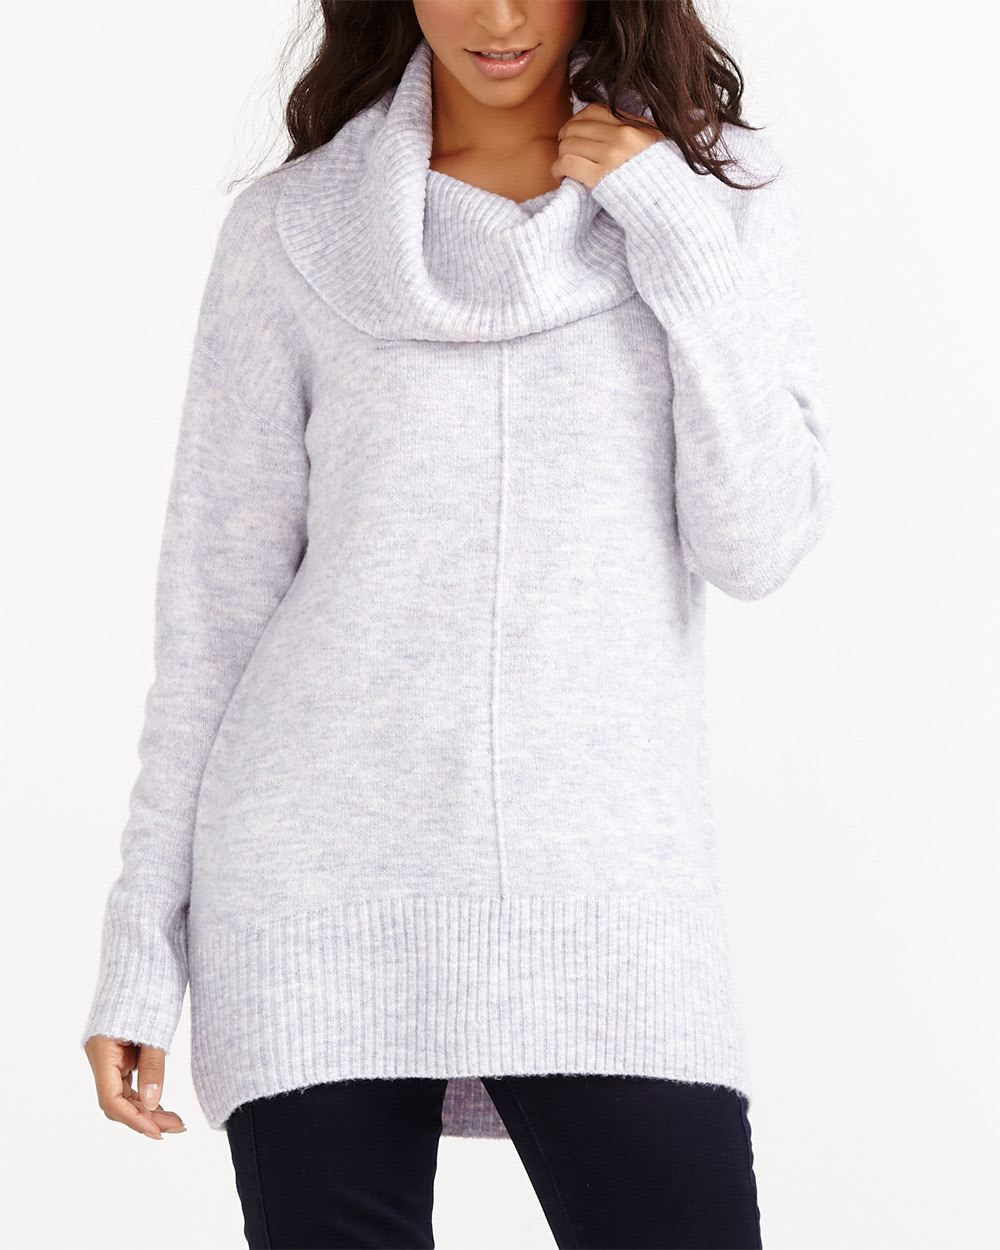 Big Easy Cowl Pullover $ 3 colors Fishing Net Crew Neck Sweater $ 2 colors Quickshop. Fluffy Fox Sweater with Free People sweaters,